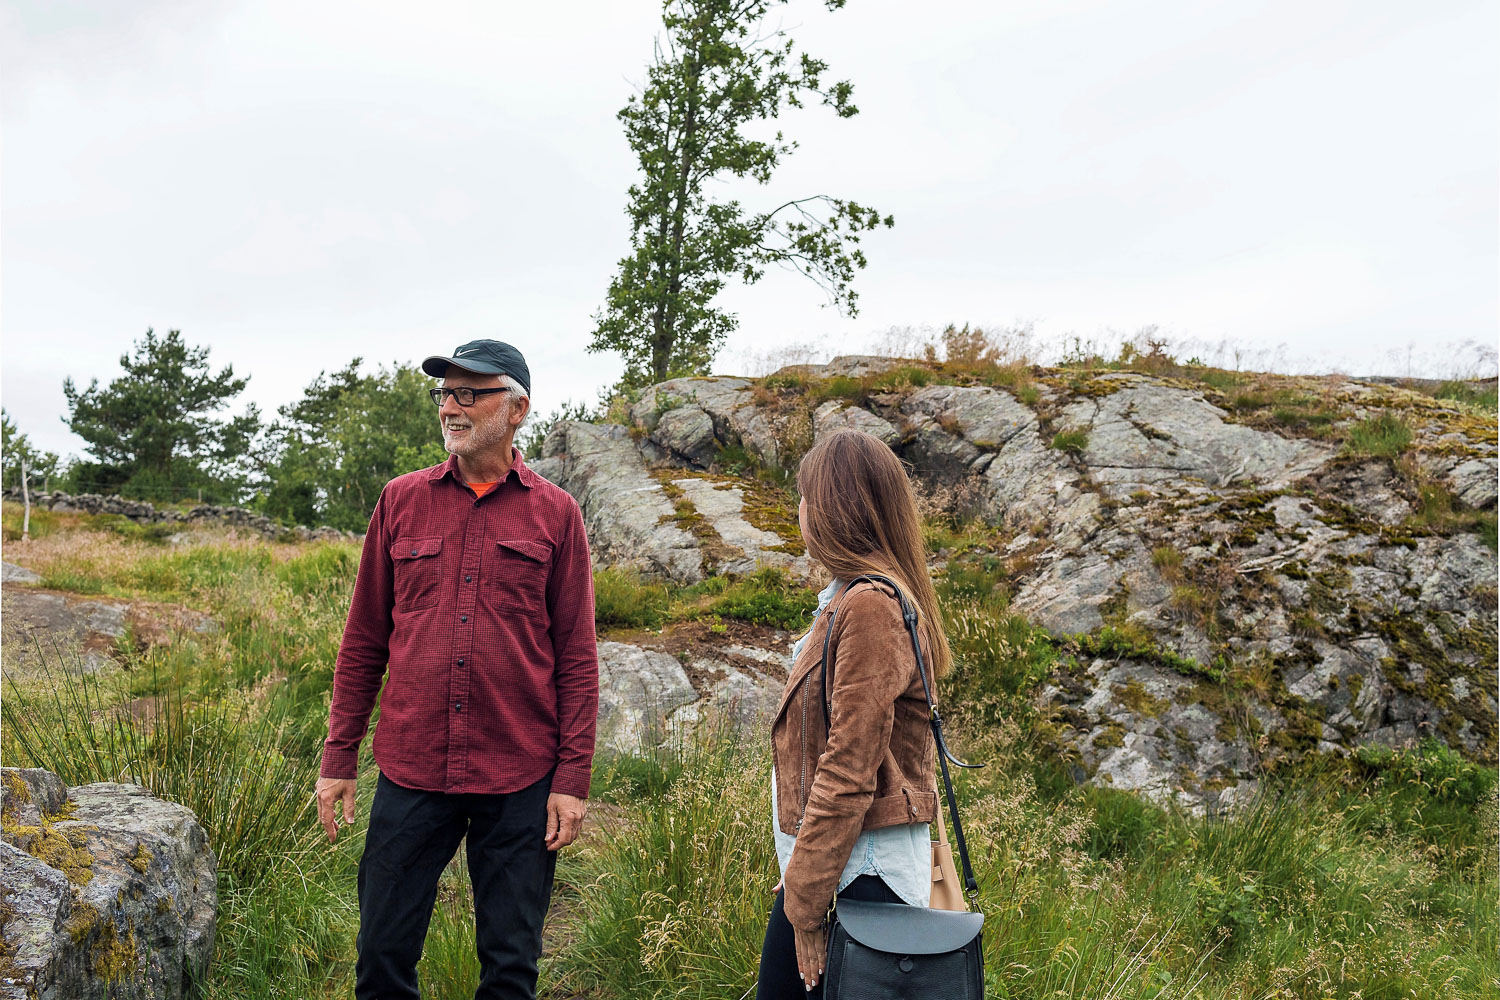 Walking around Pilane Sculpture Park with founder Peter Lennby